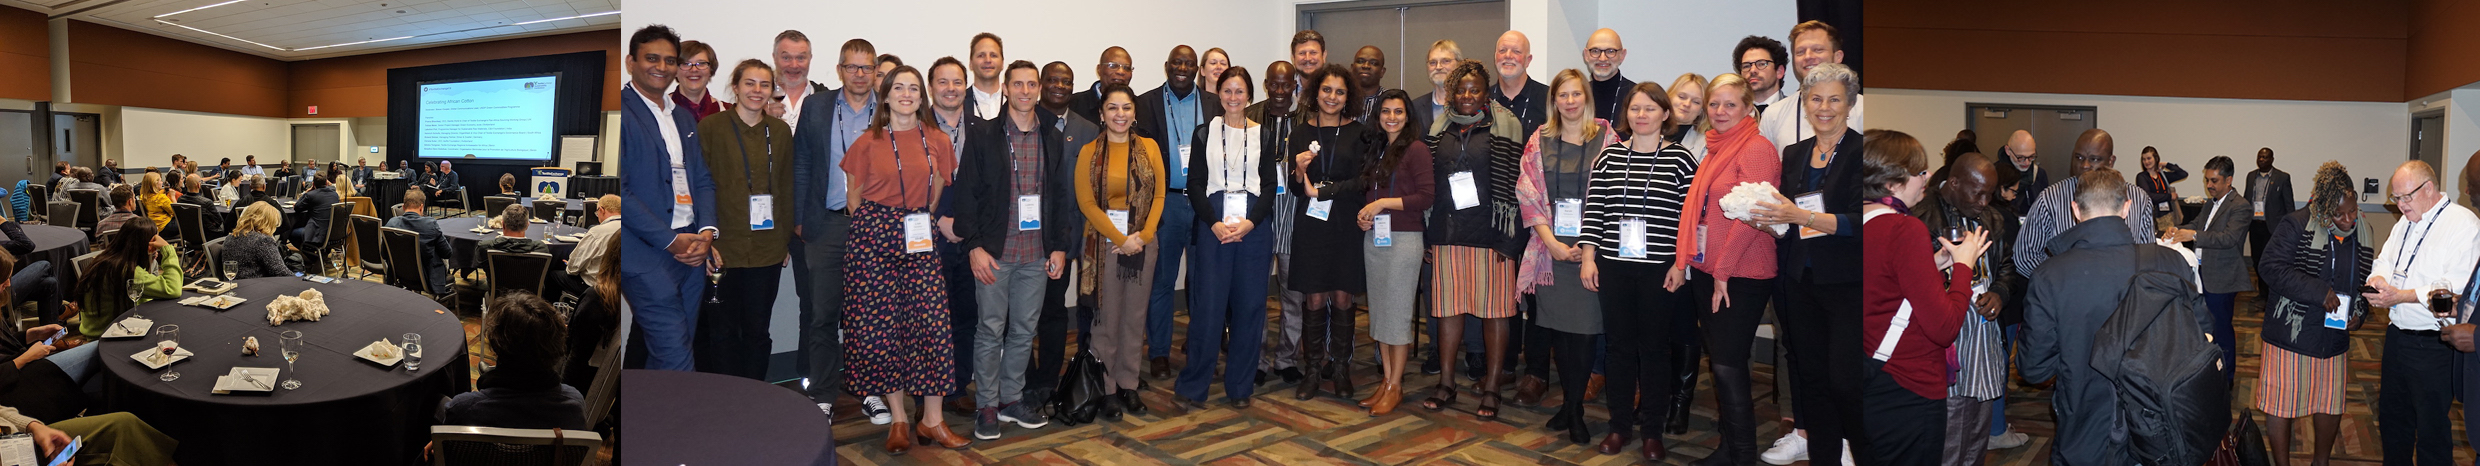 Network Meeting in Vancouver celebrating African Cotton